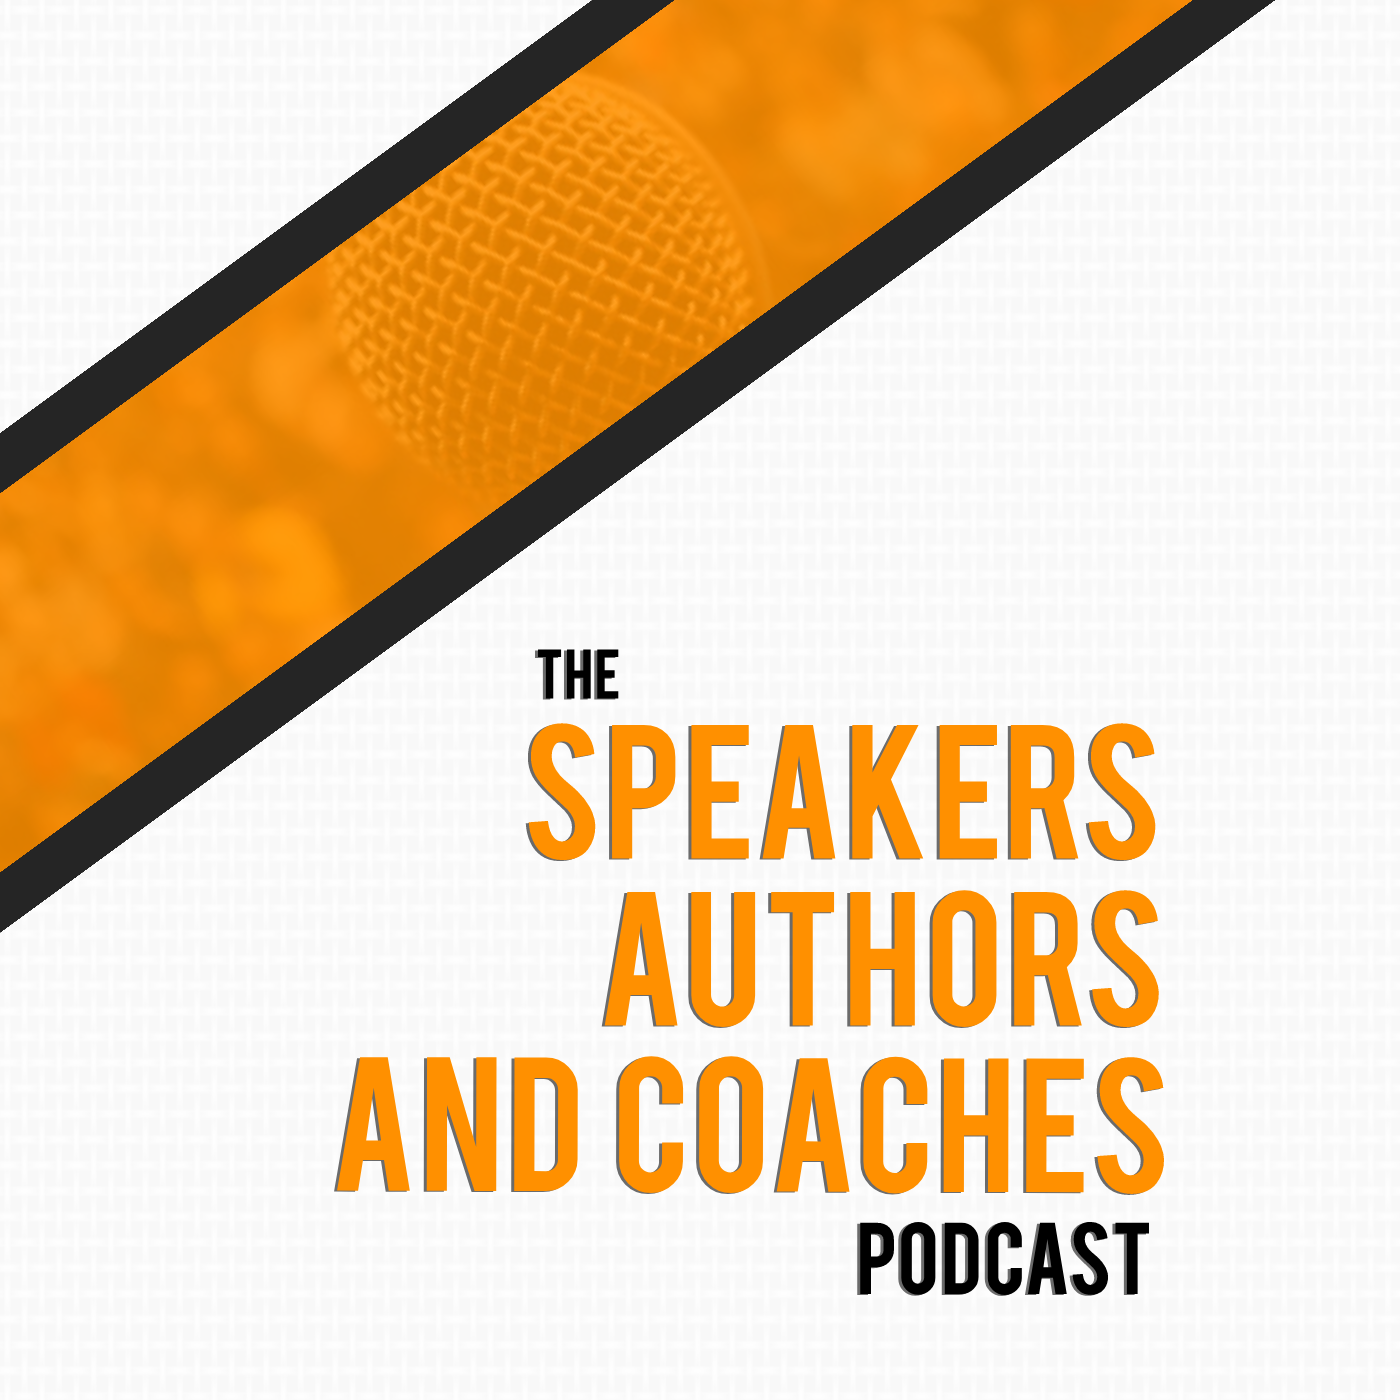 The Speakers, Authors and Coaches Podcast